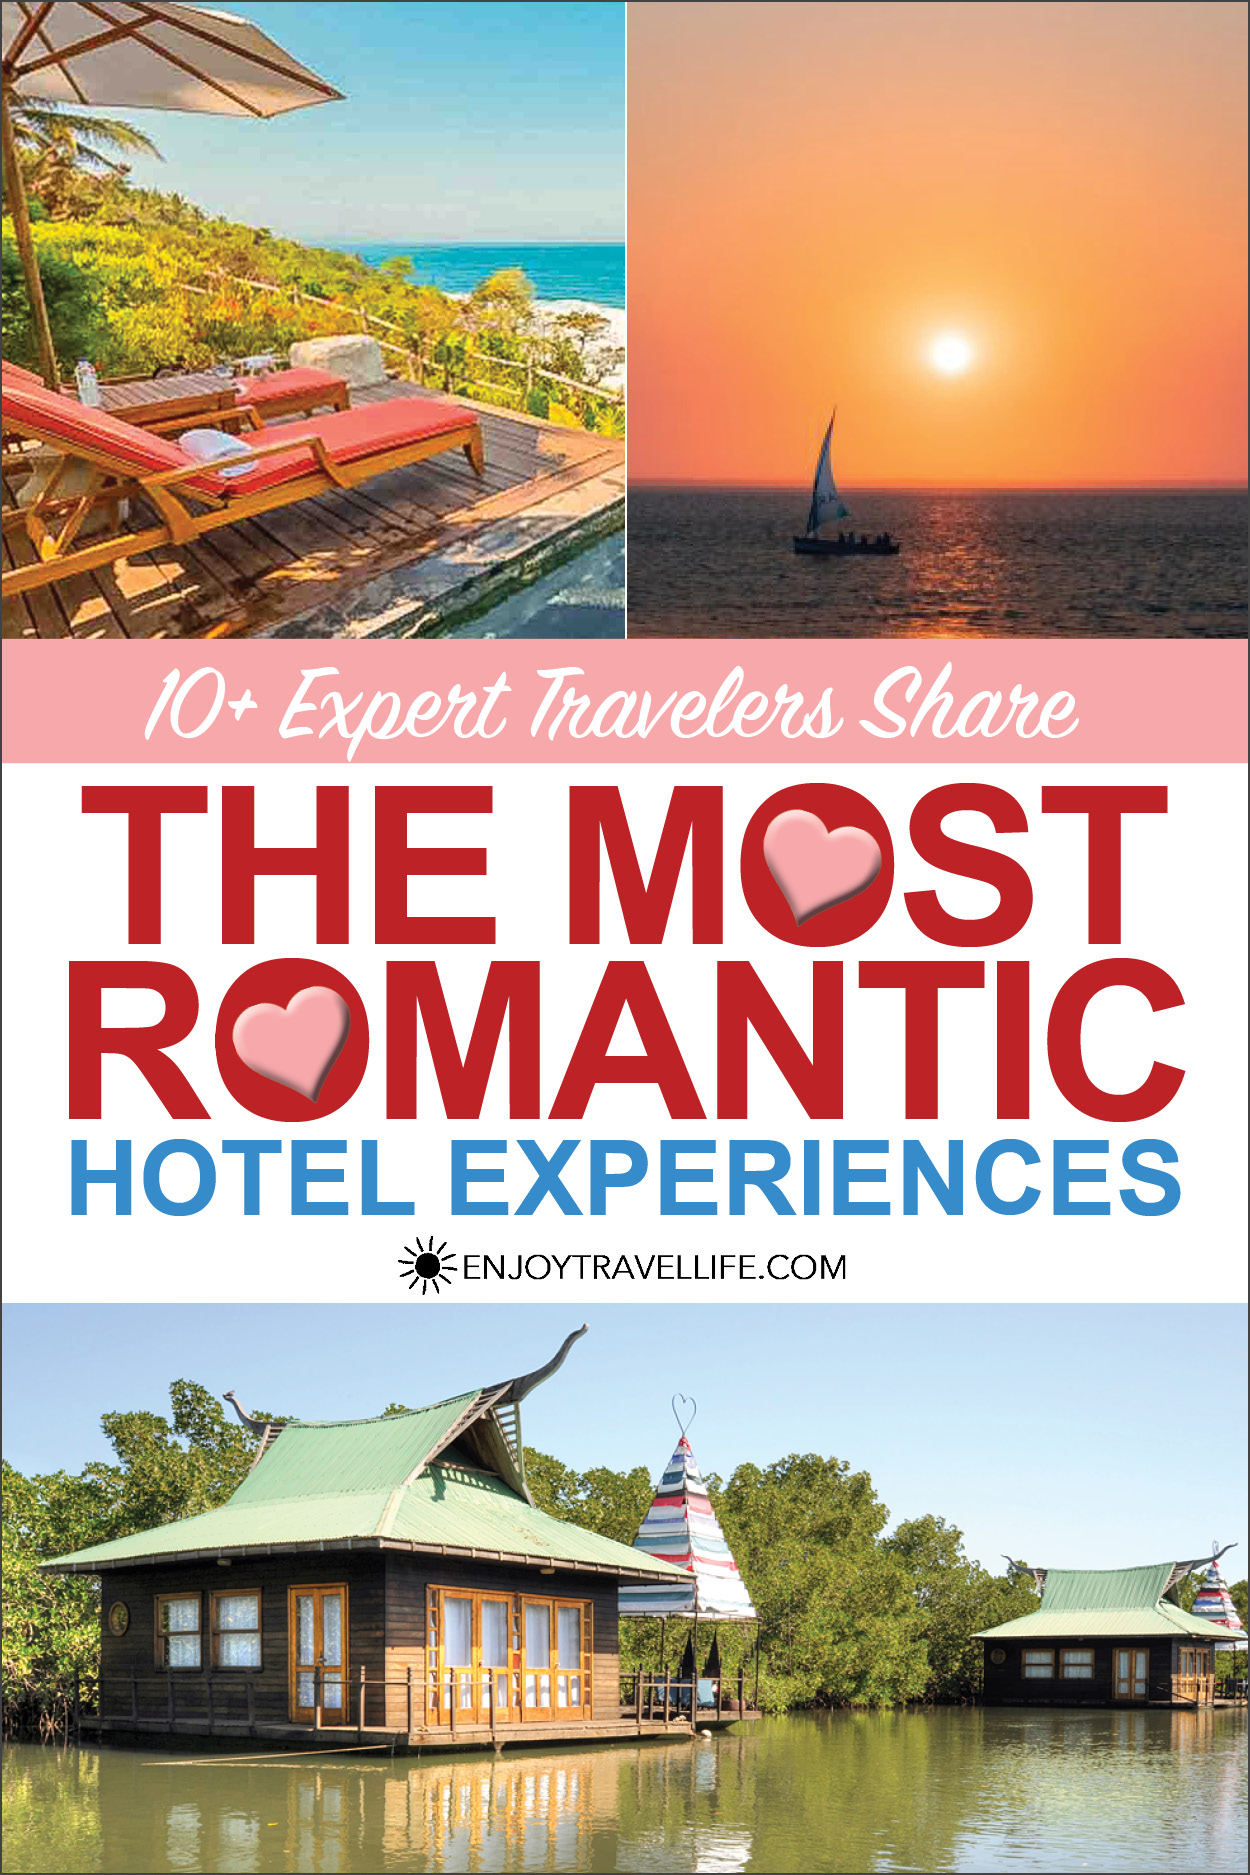 The Most Romantic Hotel Experiences Pinterest Cover